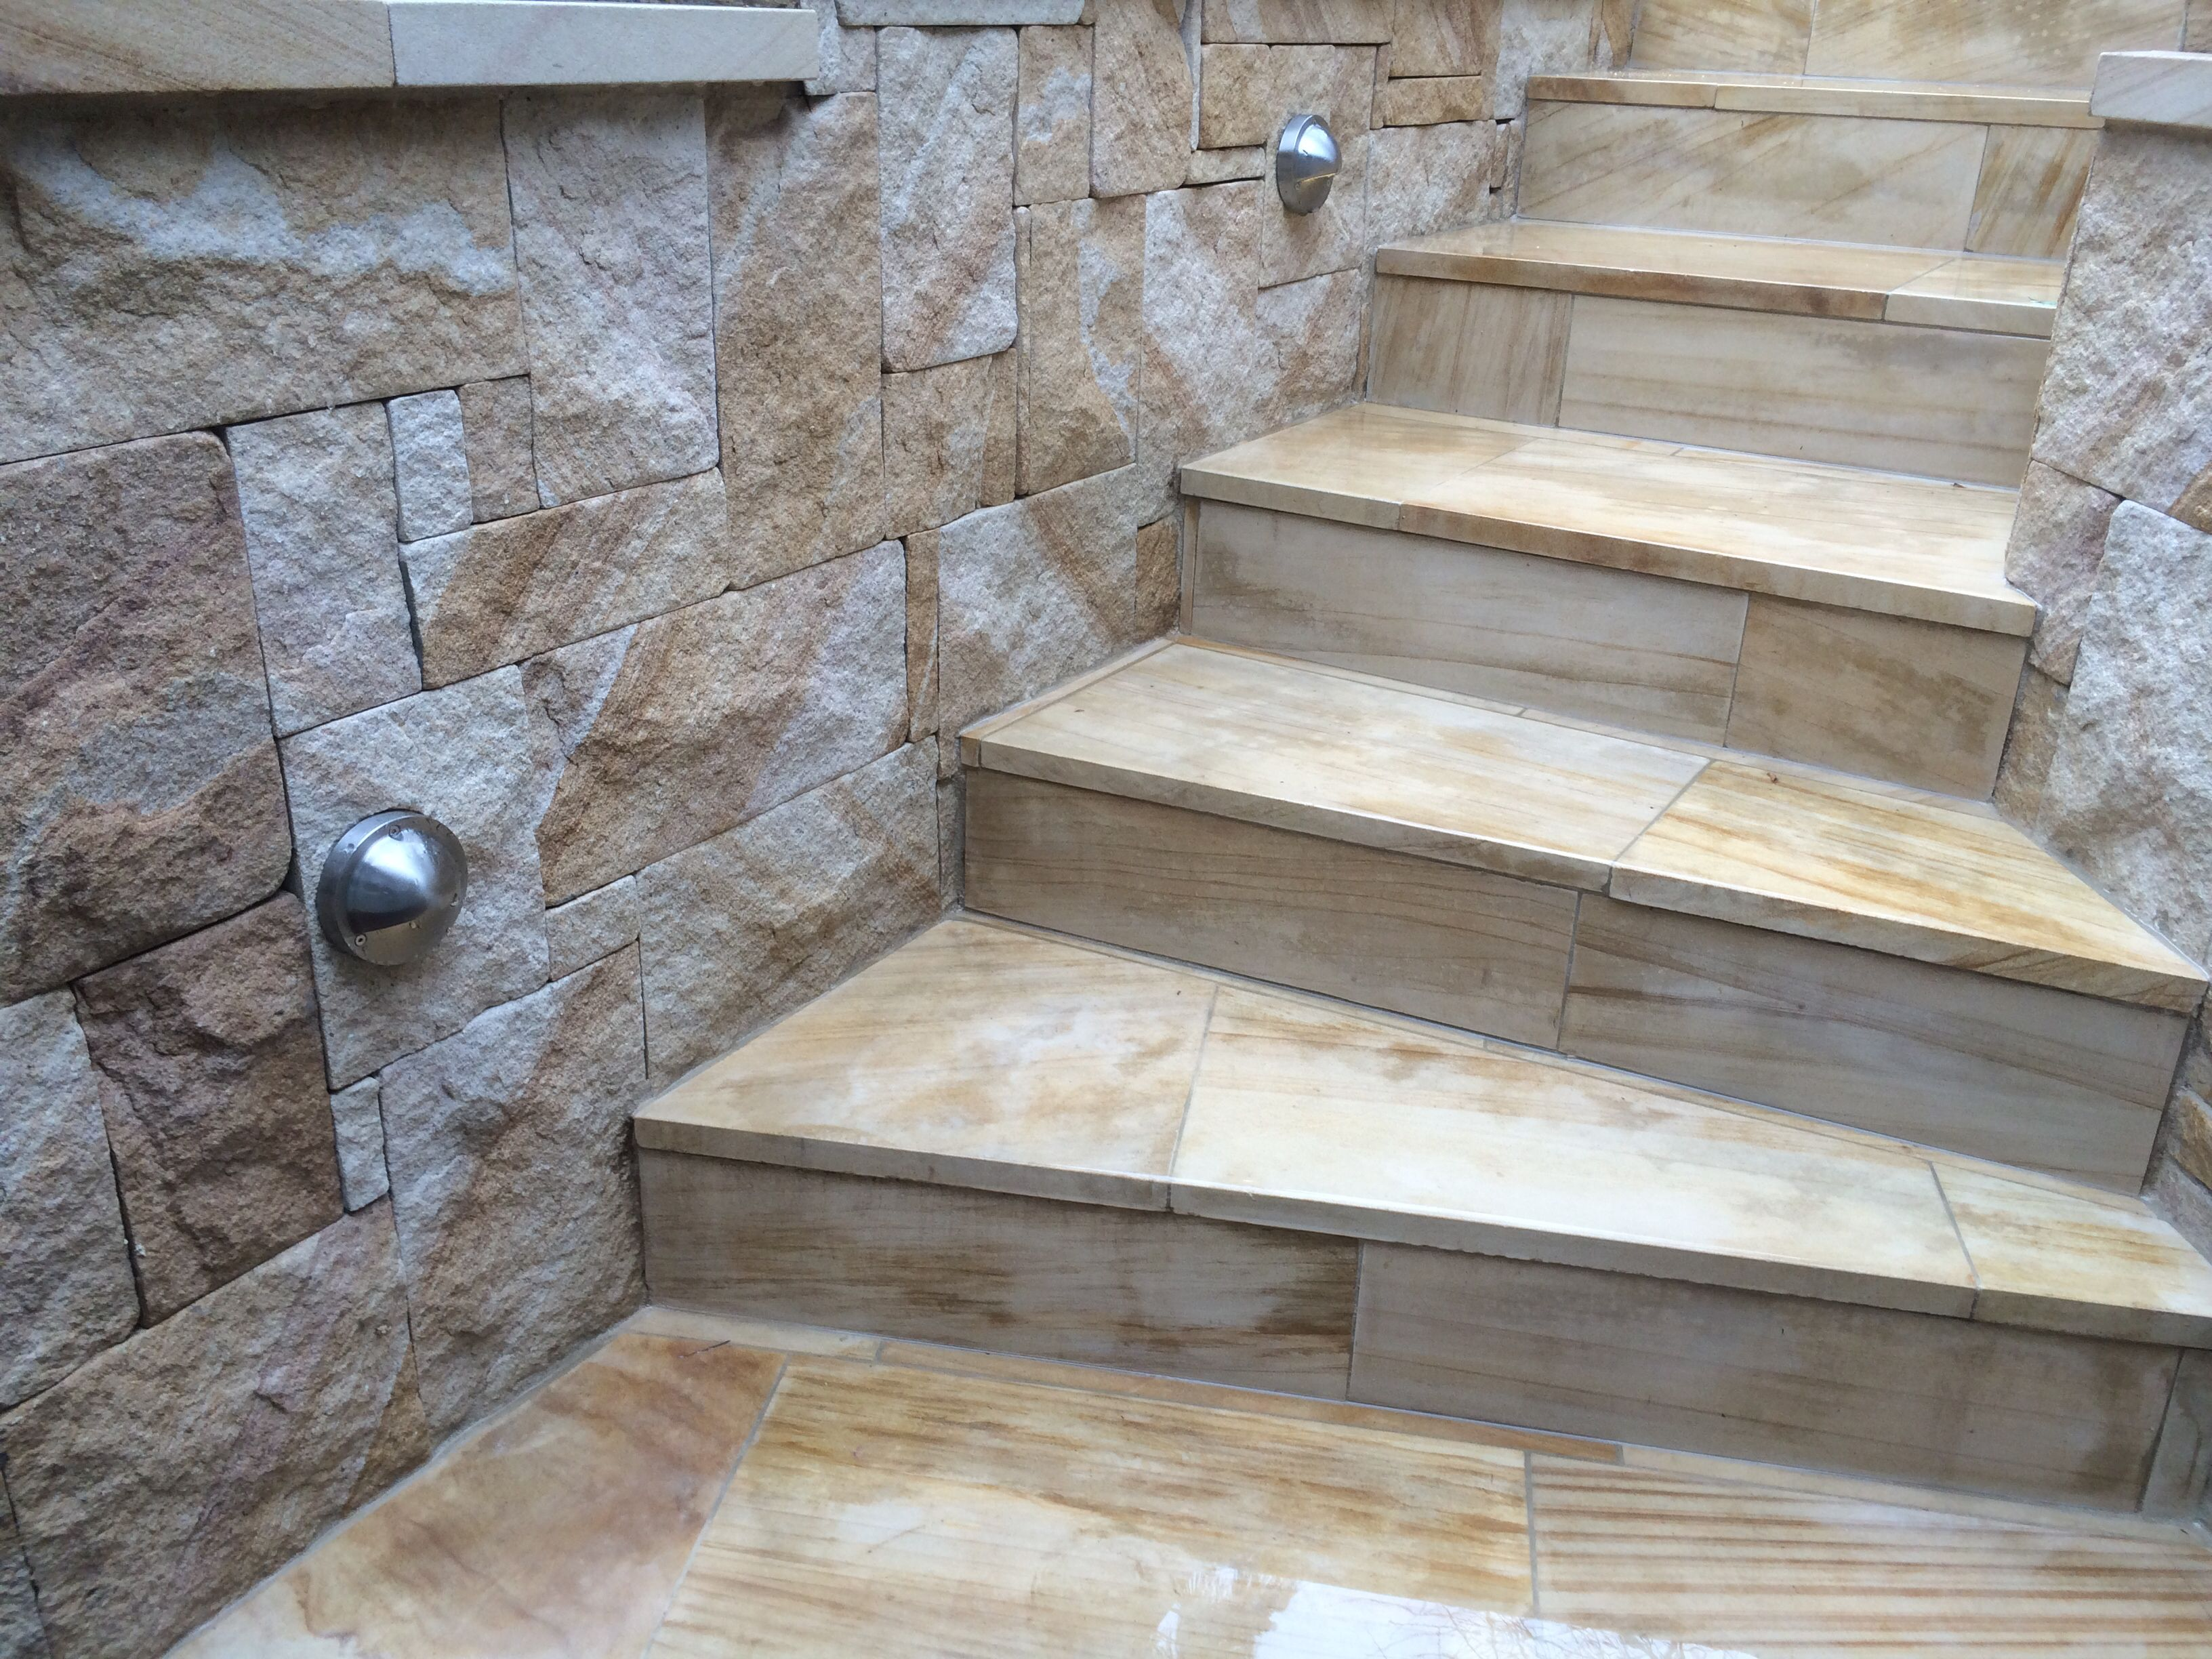 sandstone stairs, cladded walls and stainless steel lights